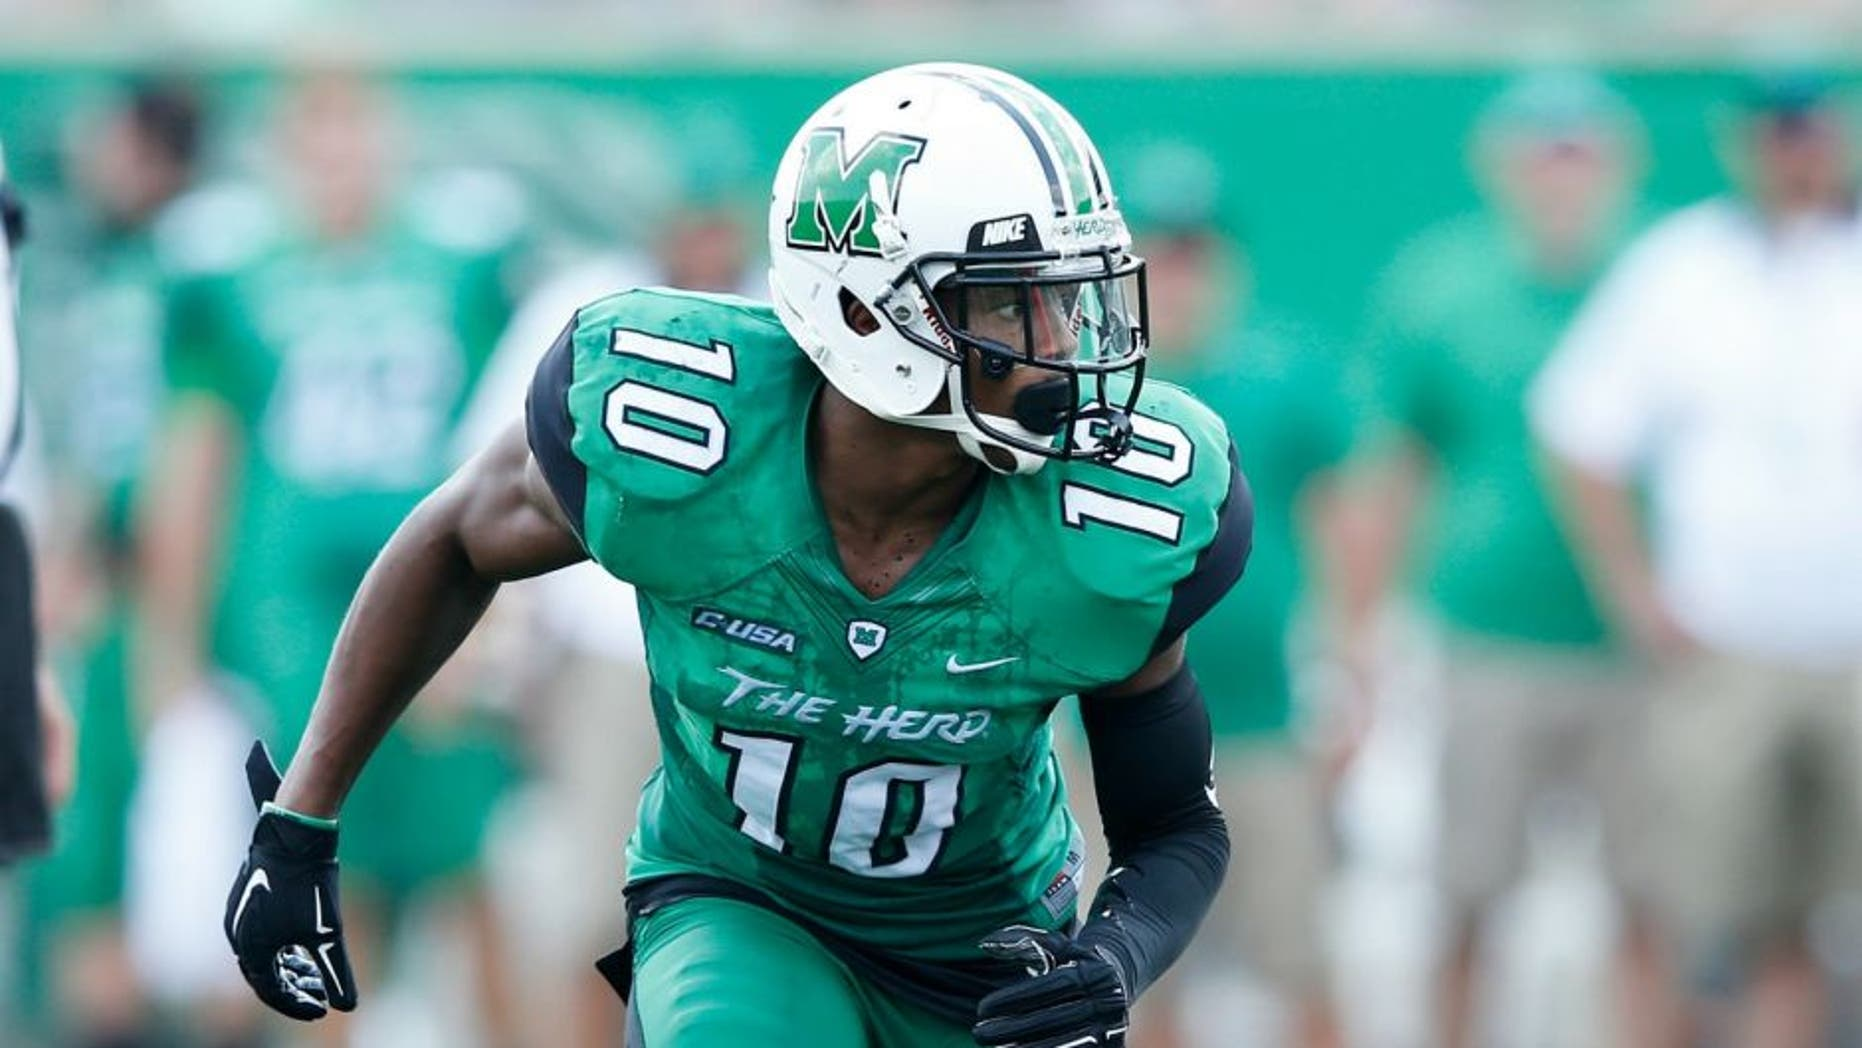 HUNTINGTON, WV - SEPTEMBER 6: Corey Tindal #10 of the Marshall Thundering Herd in action against the Purdue Boilermakers at Joan C. Edwards Stadium on September 6, 2015 in Huntington, West Virginia. Marshall defeated Purdue 41-31. (Photo by Joe Robbins/Getty Images)